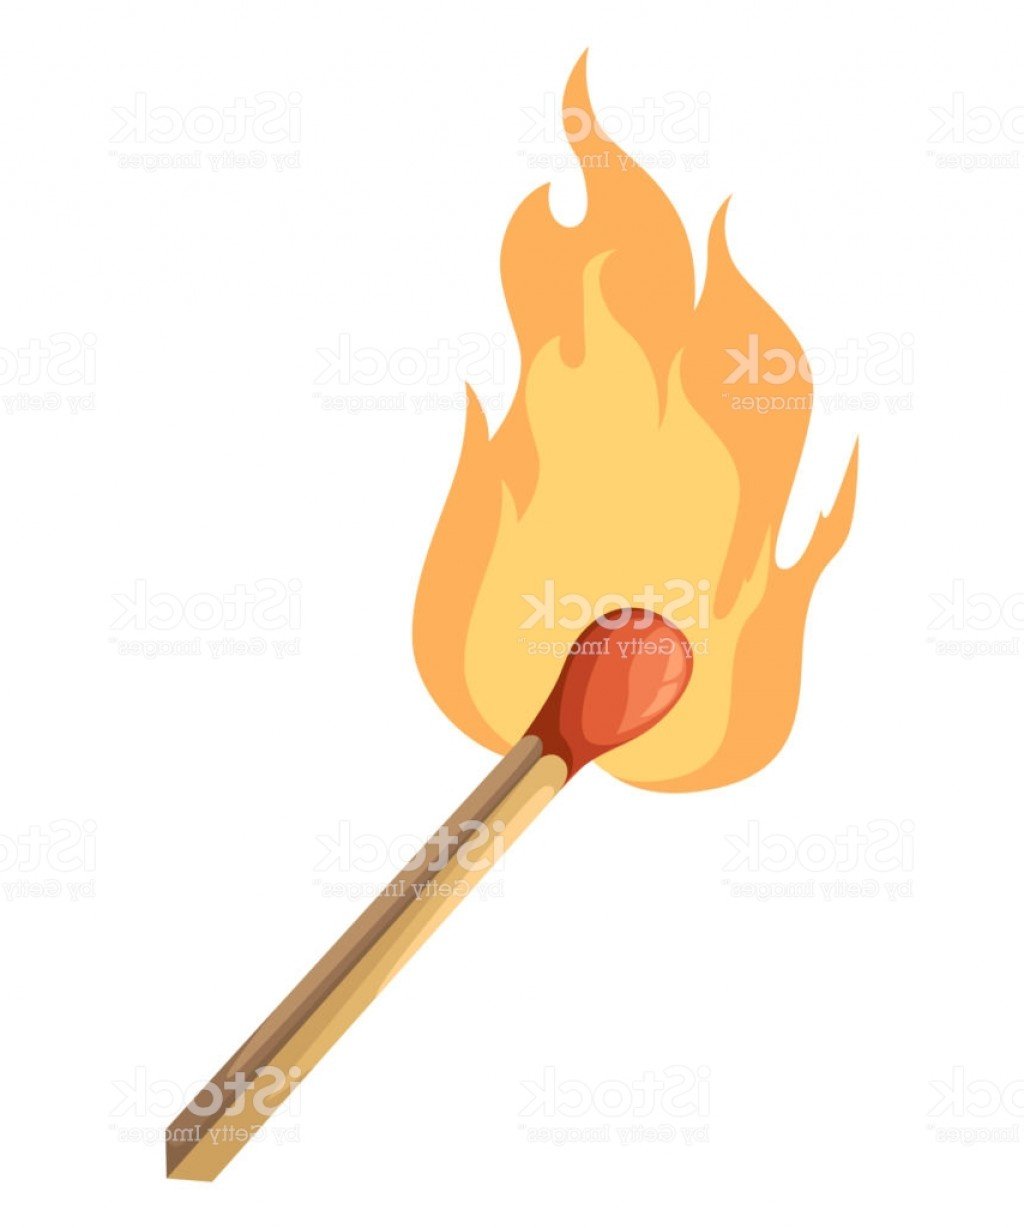 Vector Flame Stick Pattern: Burning Match Stick Illustration Match With Fire Vector Illustration Isolated On Gm